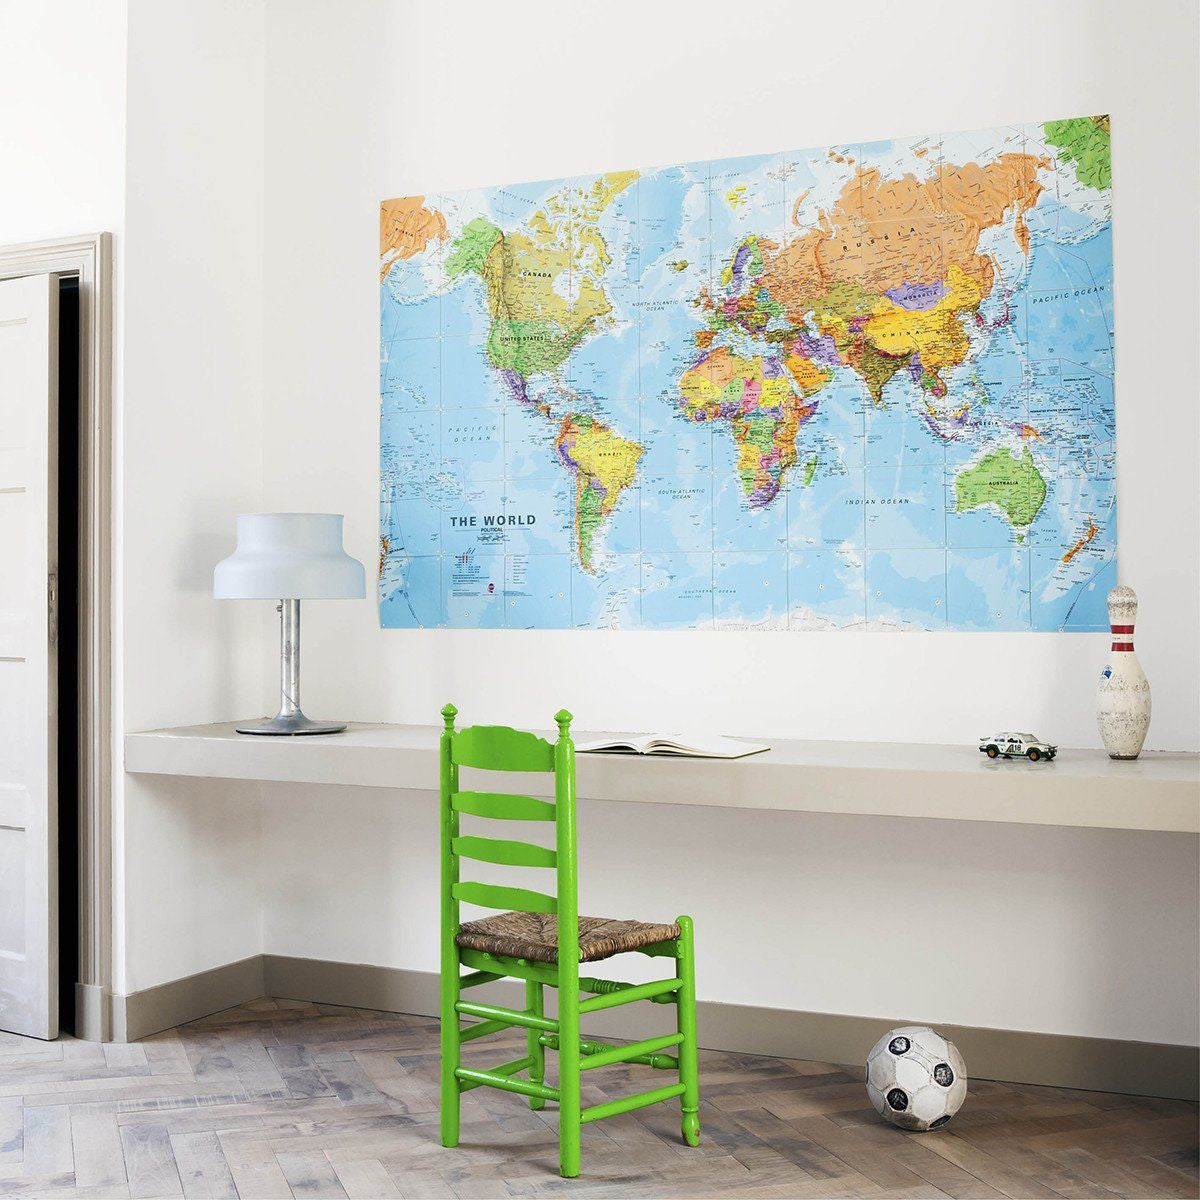 Ixxi artwork world map 200 x 120cm shut the front door online ixxi ixxi artwork world map 200 x 120cm shut the front door gumiabroncs Image collections